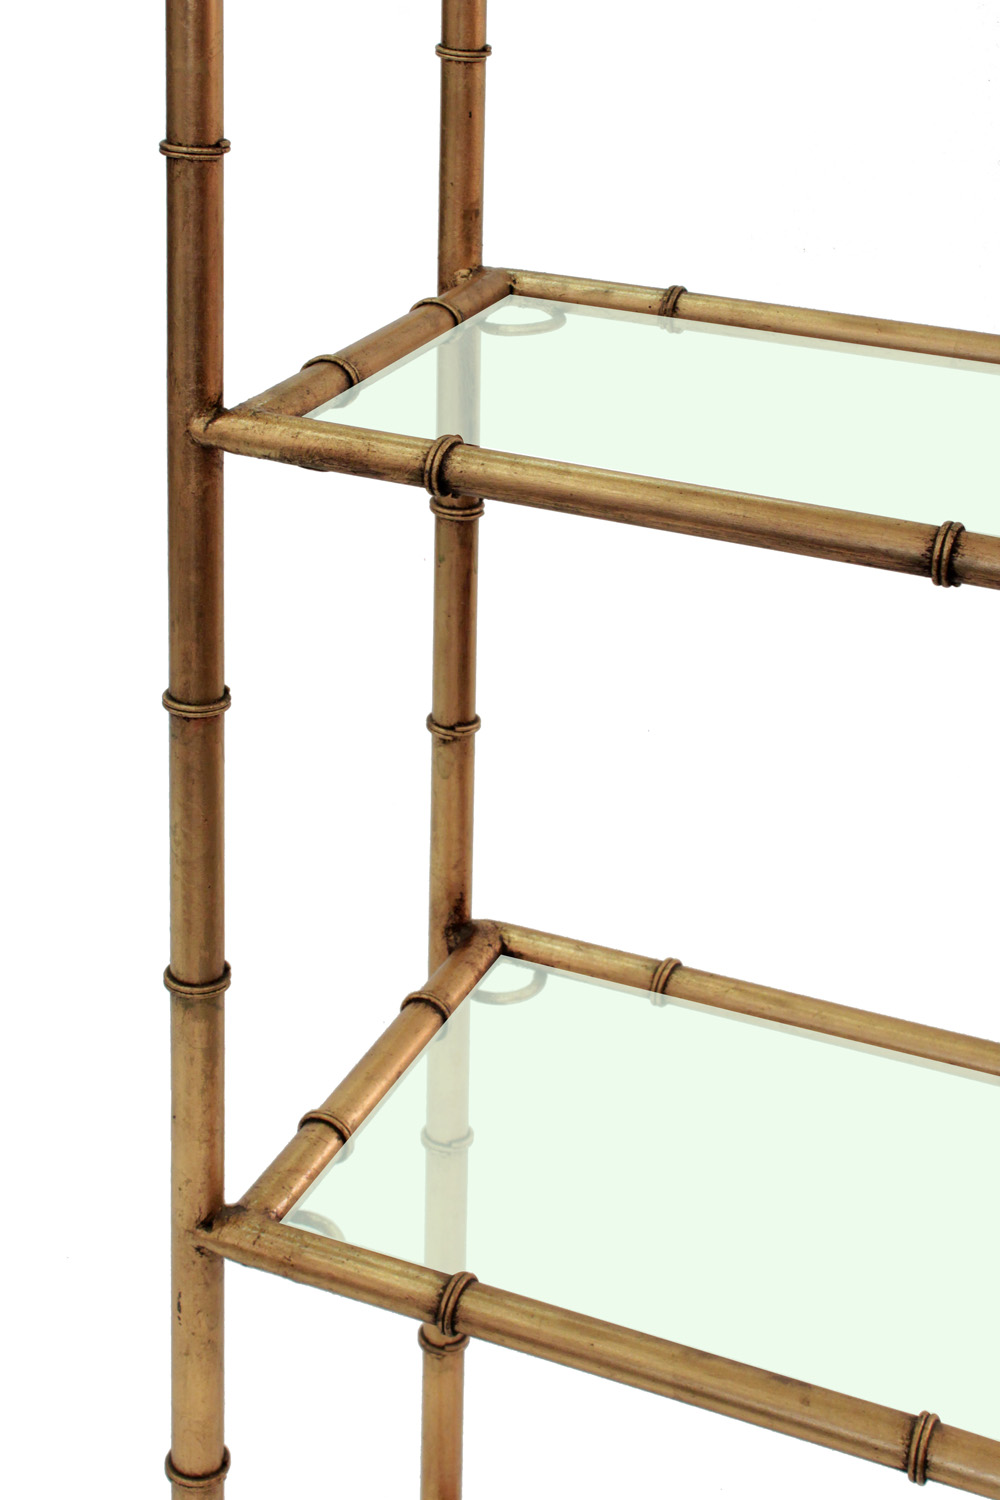 70's 95 gilded bamboo motif etagere10 detail4 hires.jpg